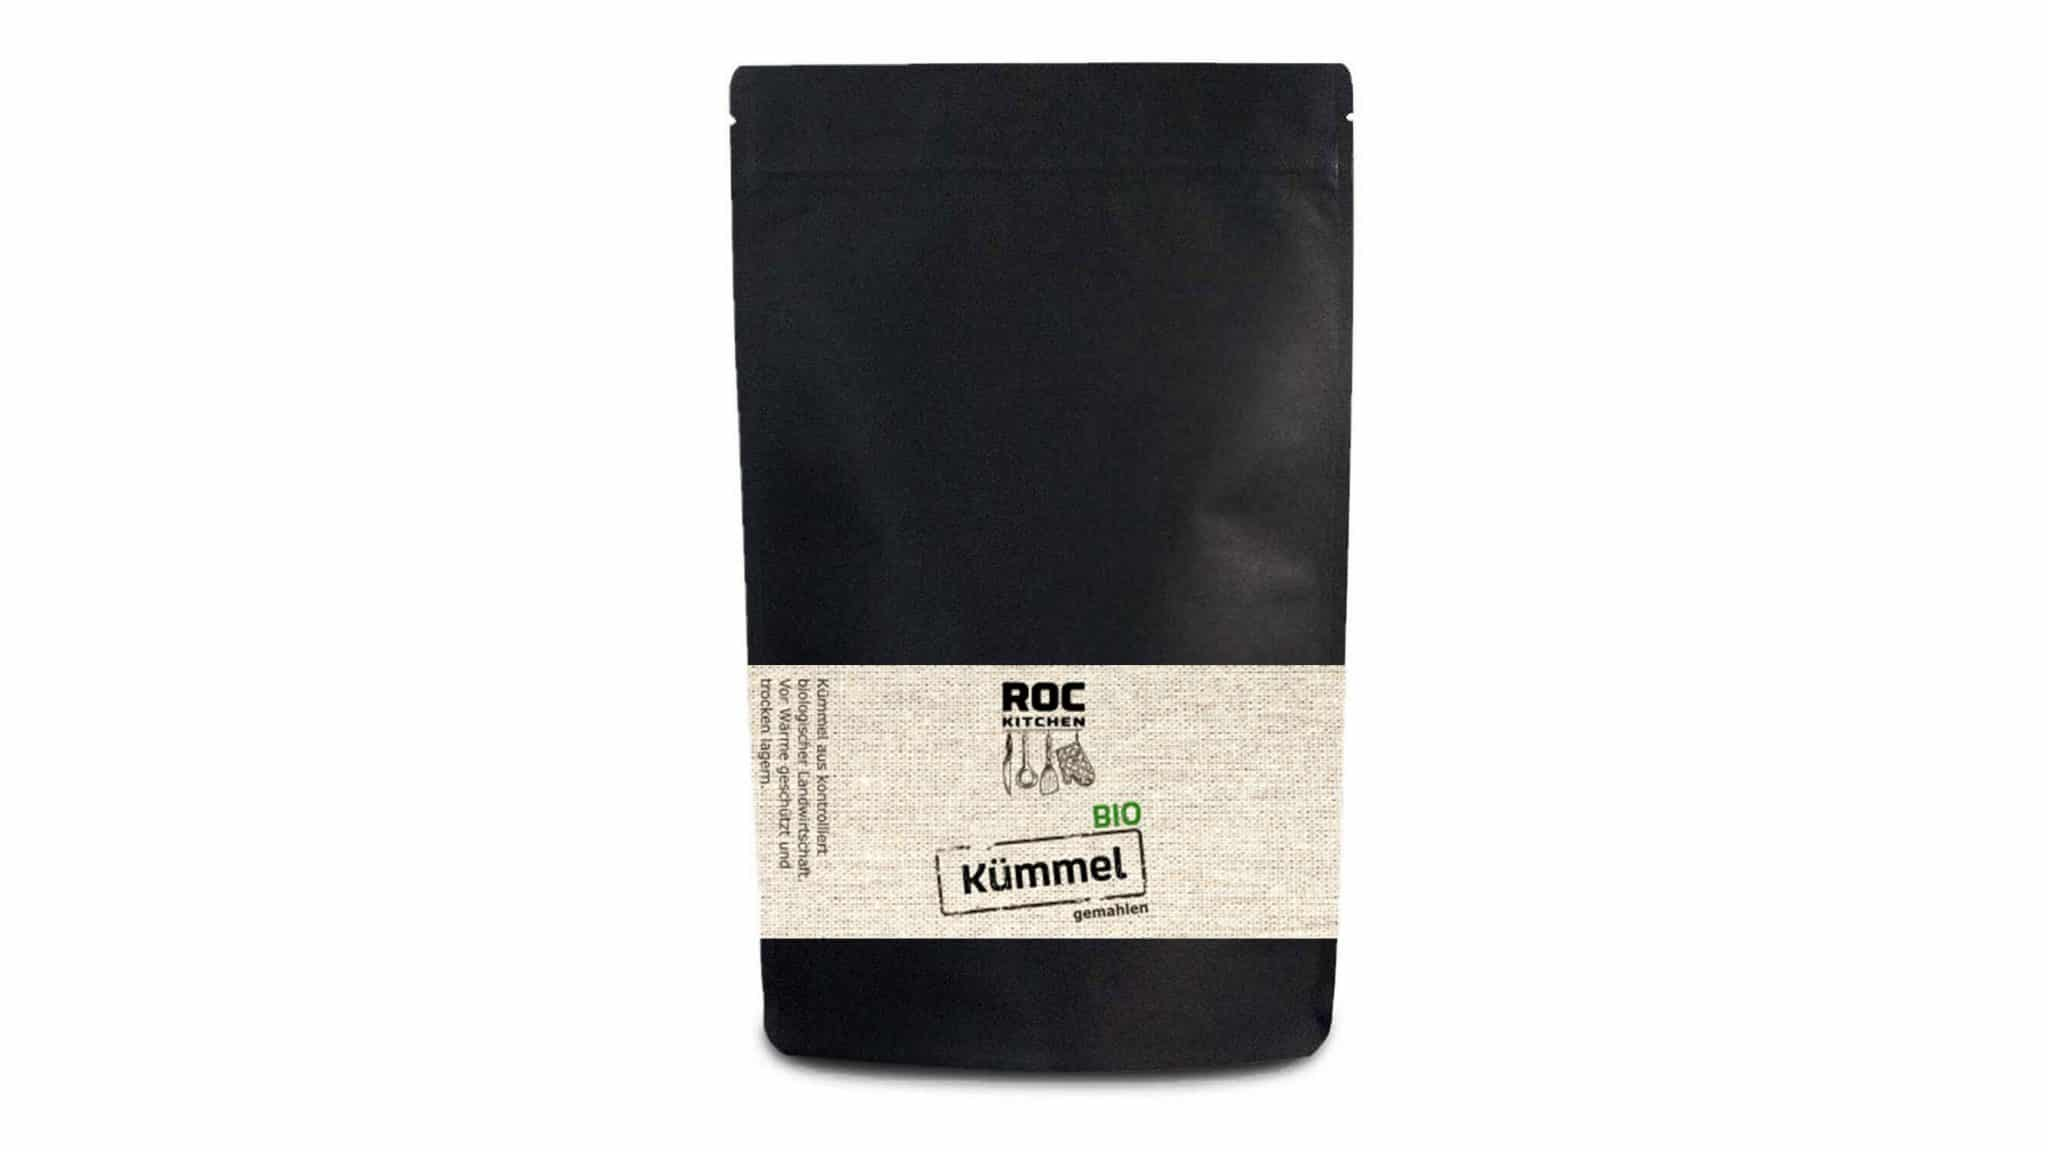 ROC-Kitchen Bio Kümmel